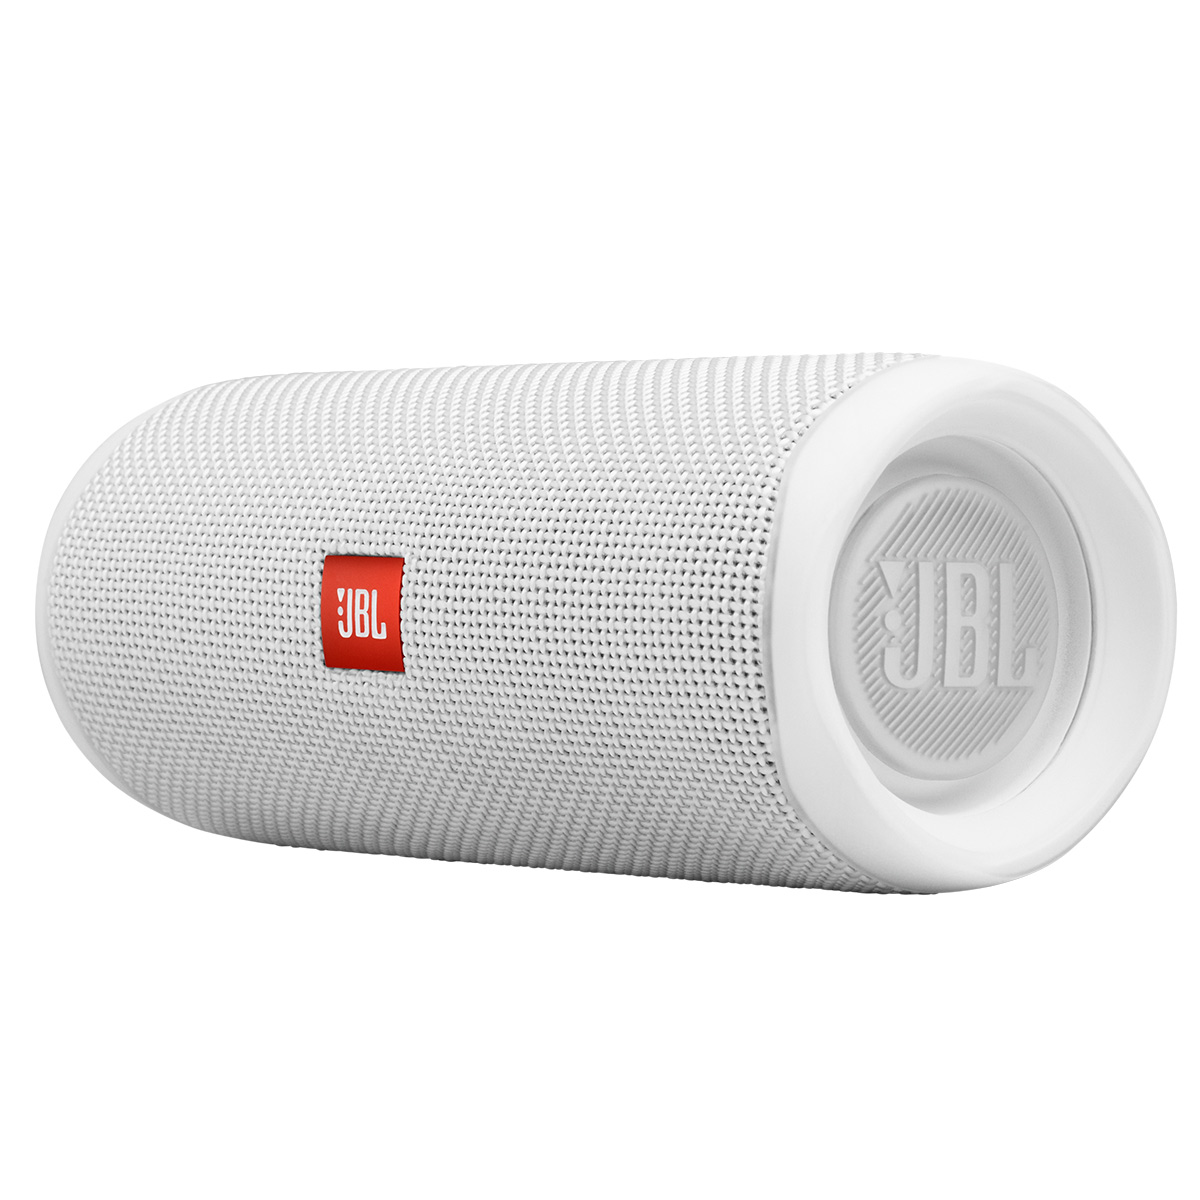 JBL-Flip-5-Portable-Waterproof-Bluetooth-Speaker thumbnail 43